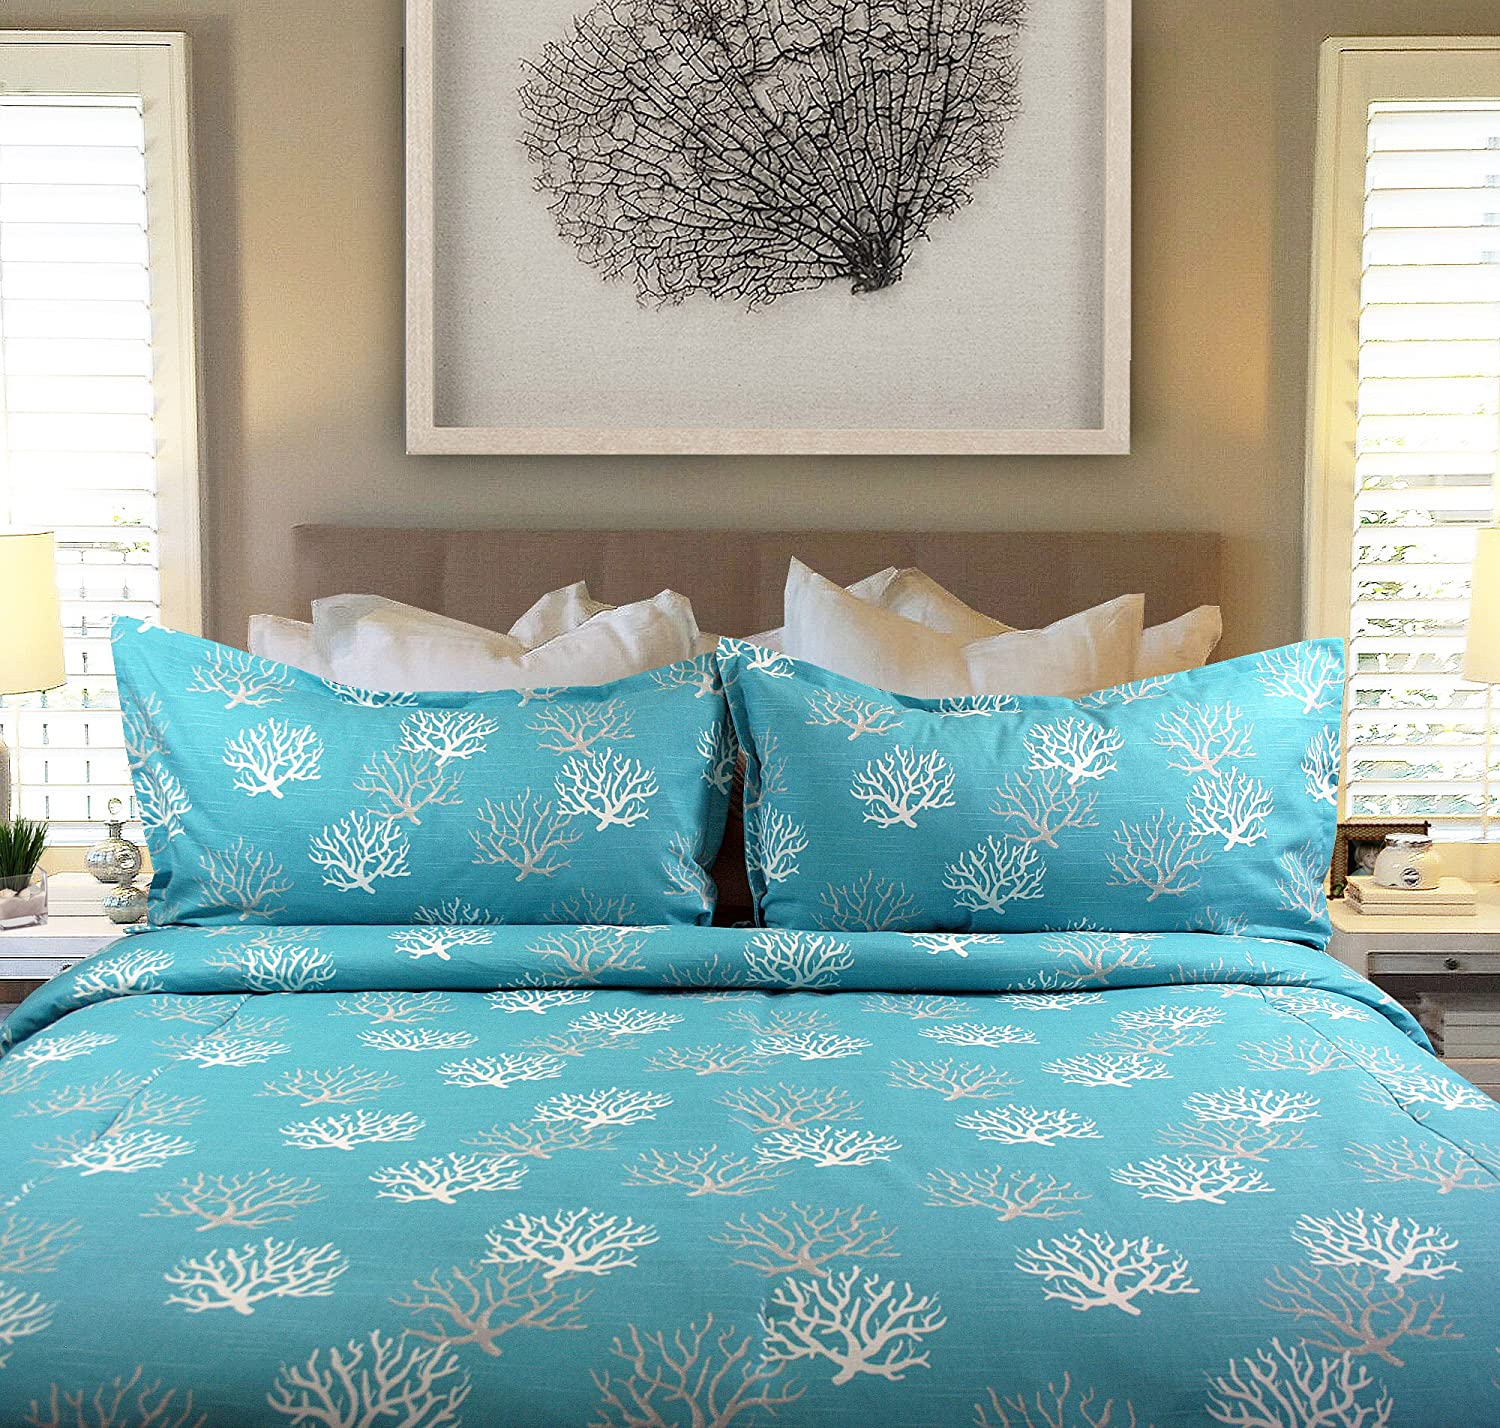 Dean Miller Surf Bedding Coral Reef Blue - Duvet Cover with Matching Shams (Queen/Full)